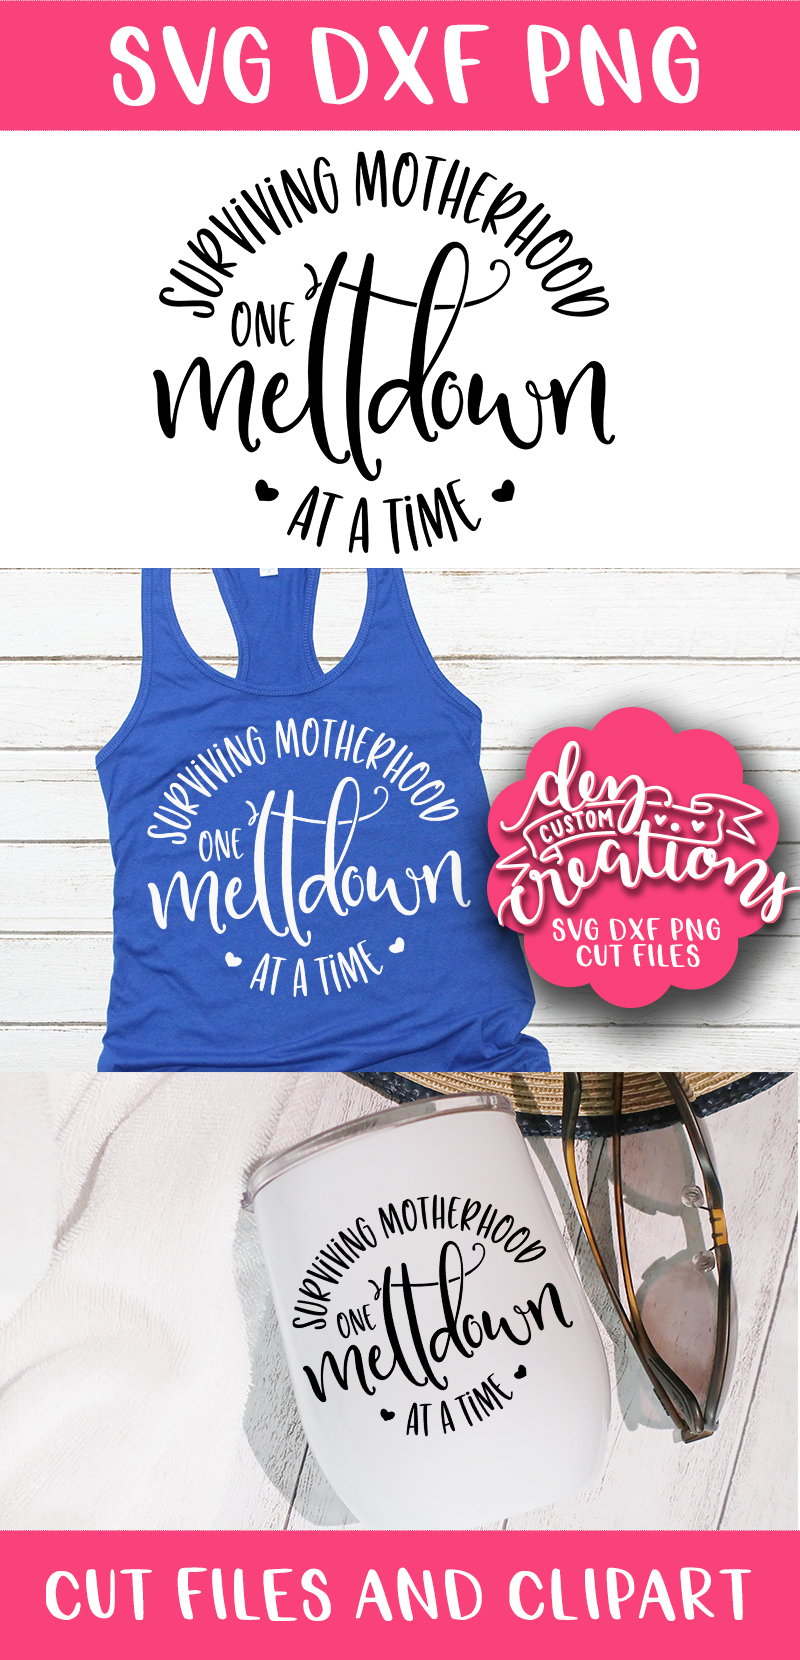 Surviving Motherhood One Meltdown at a Time 2 SVG, DXF, PNG example image 4